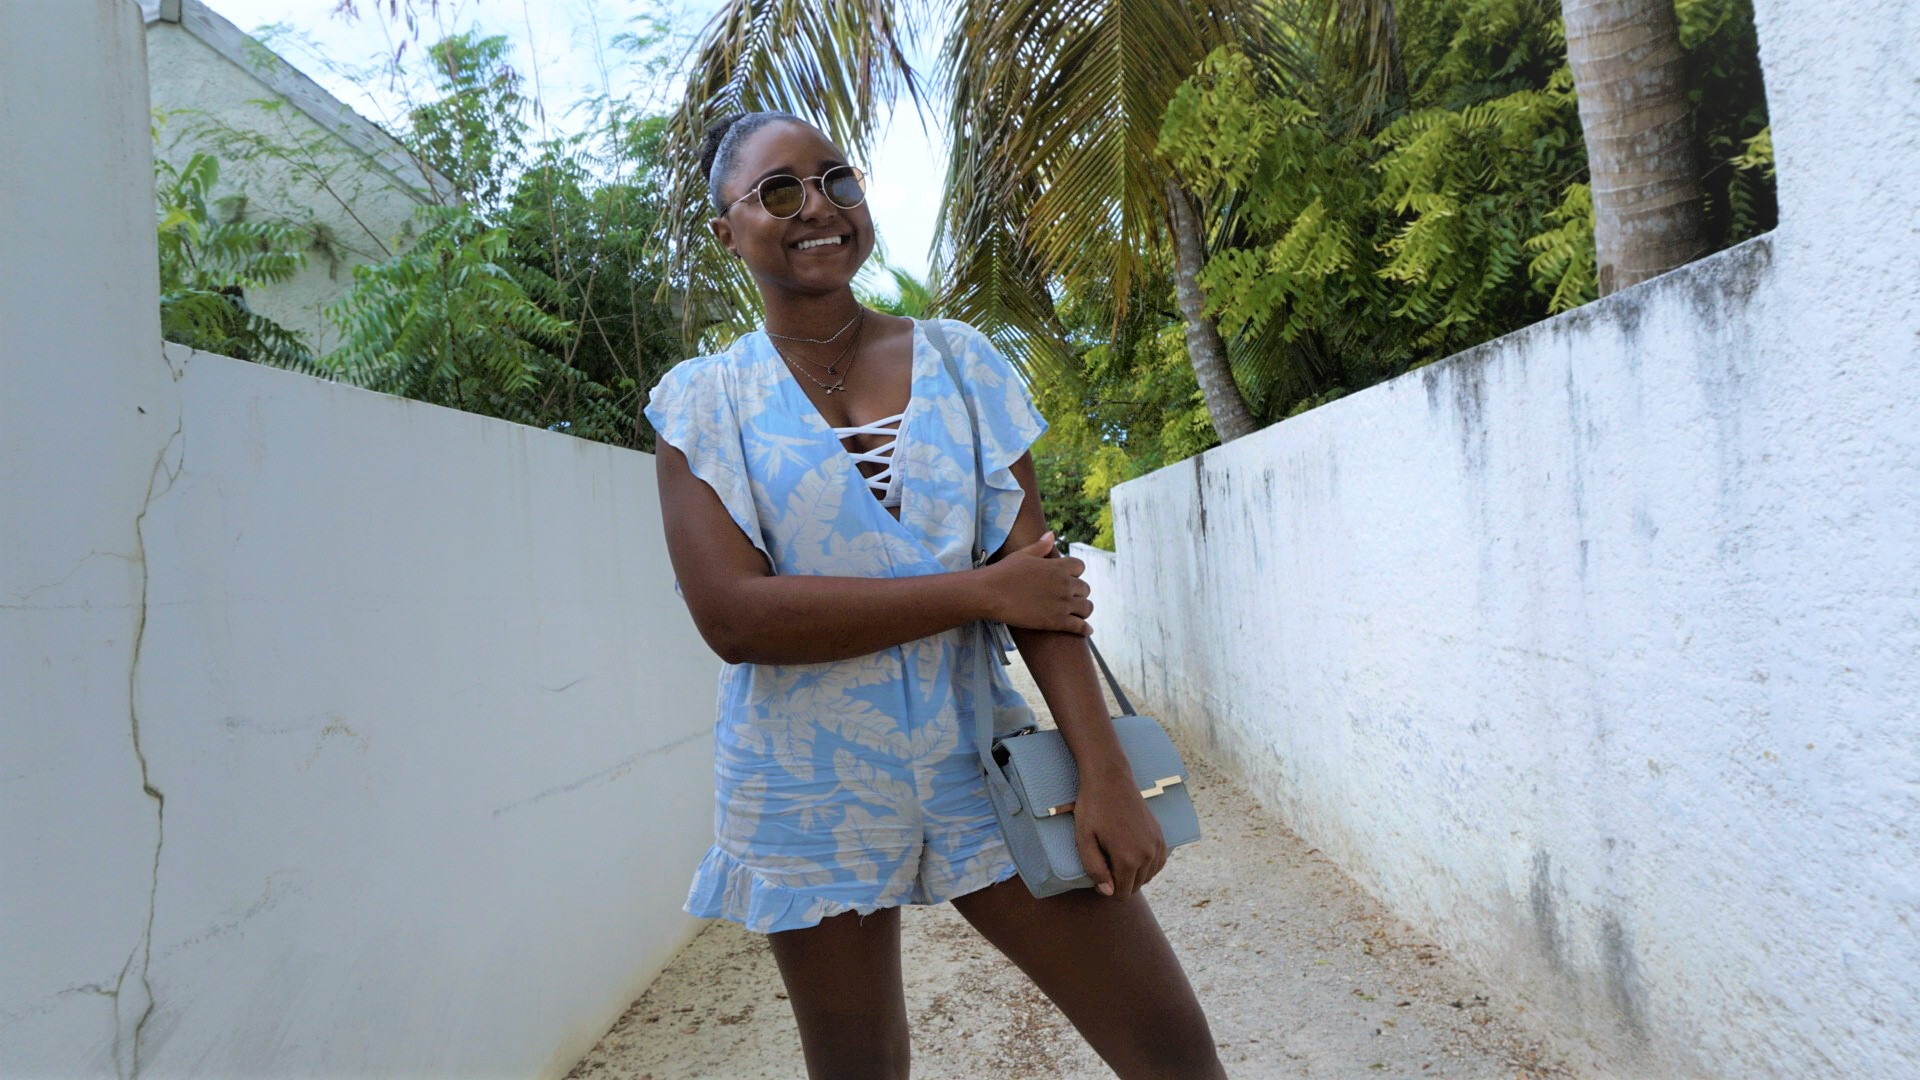 From Beach Chic to Street Chic in a sky blue romper